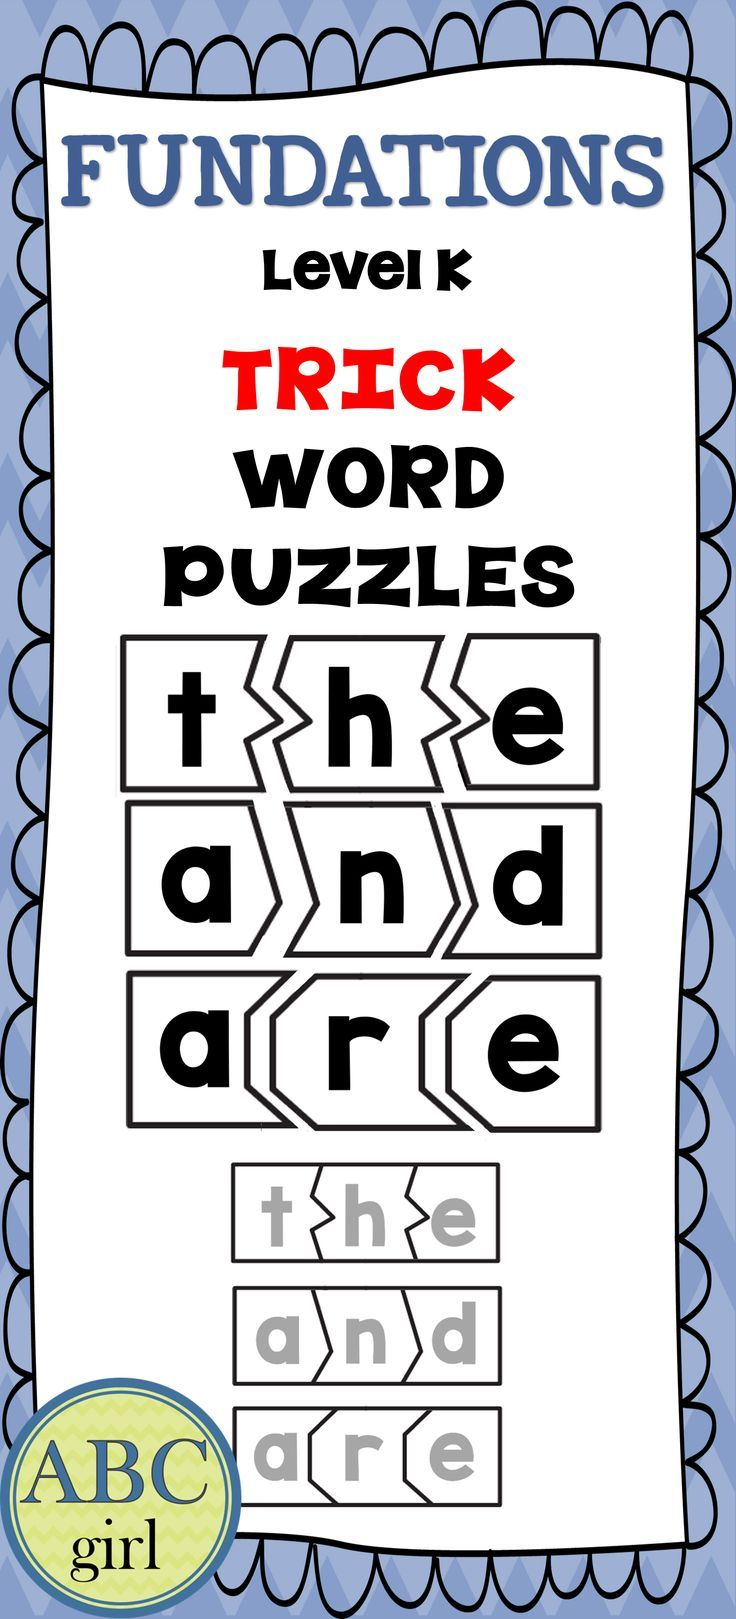 These Fundations puzzles have helped my students so much!